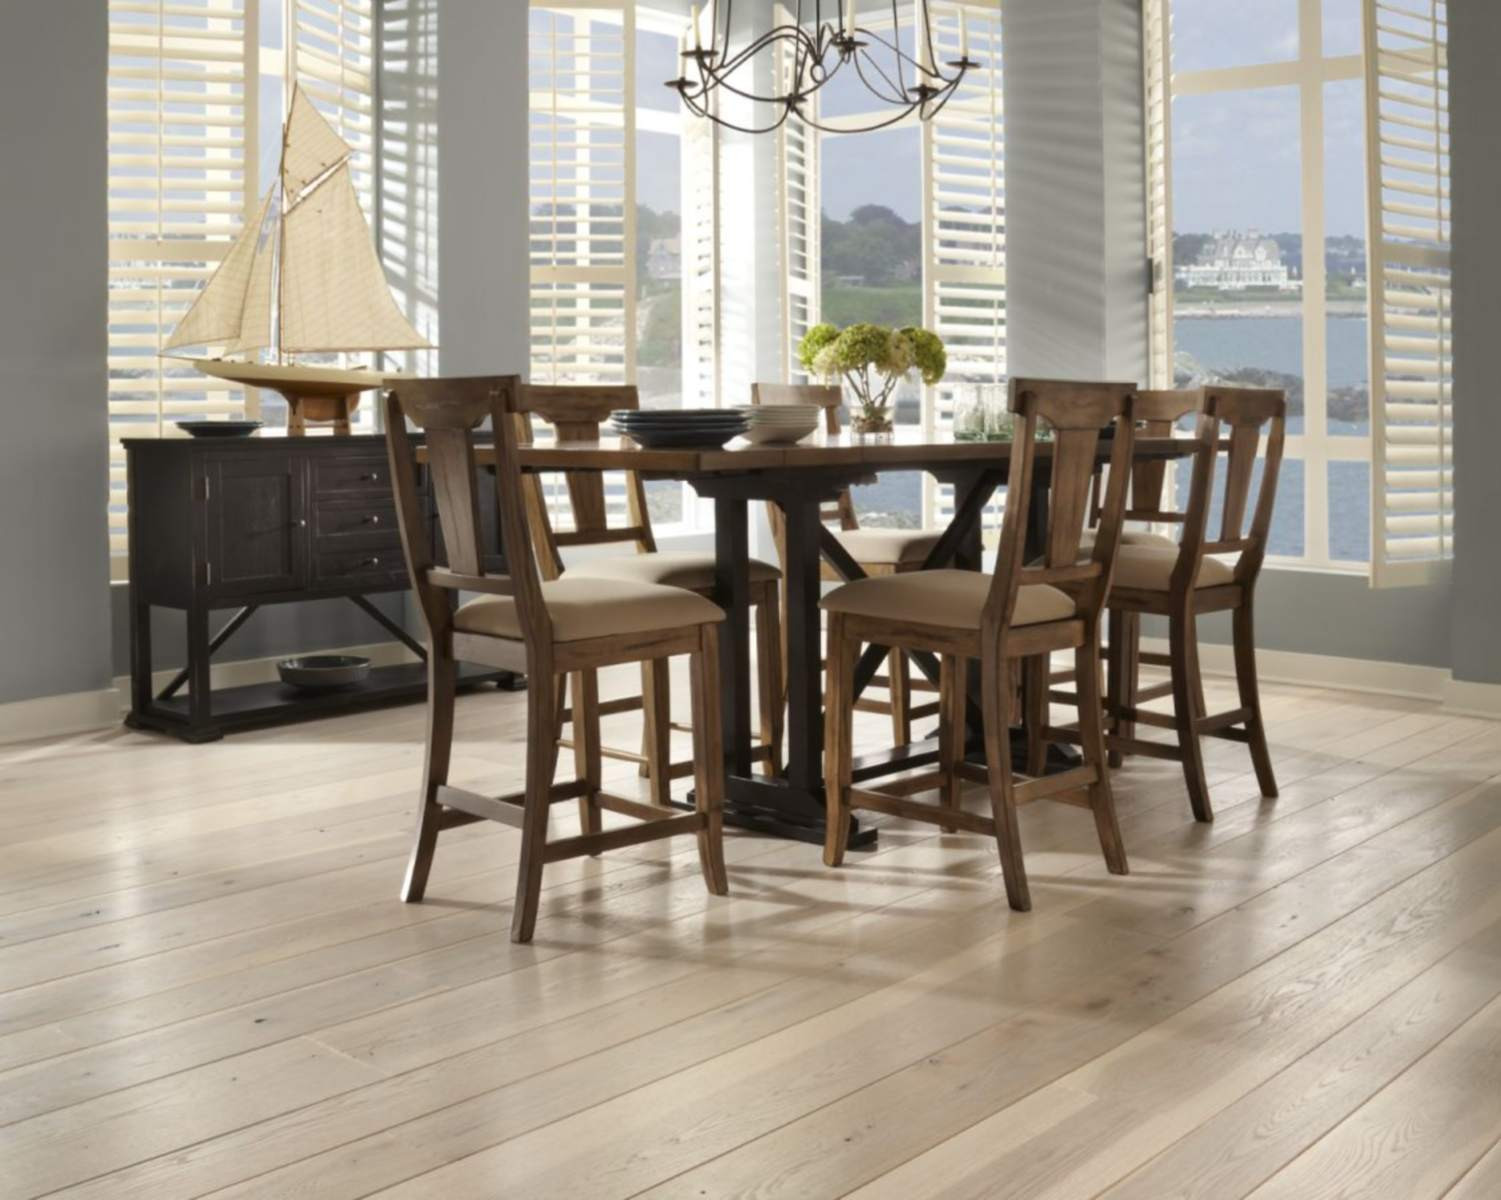 kentwood hardwood flooring reviews of top 5 brands for solid hardwood flooring throughout a dining room with carlisle hickorys wide plank flooring